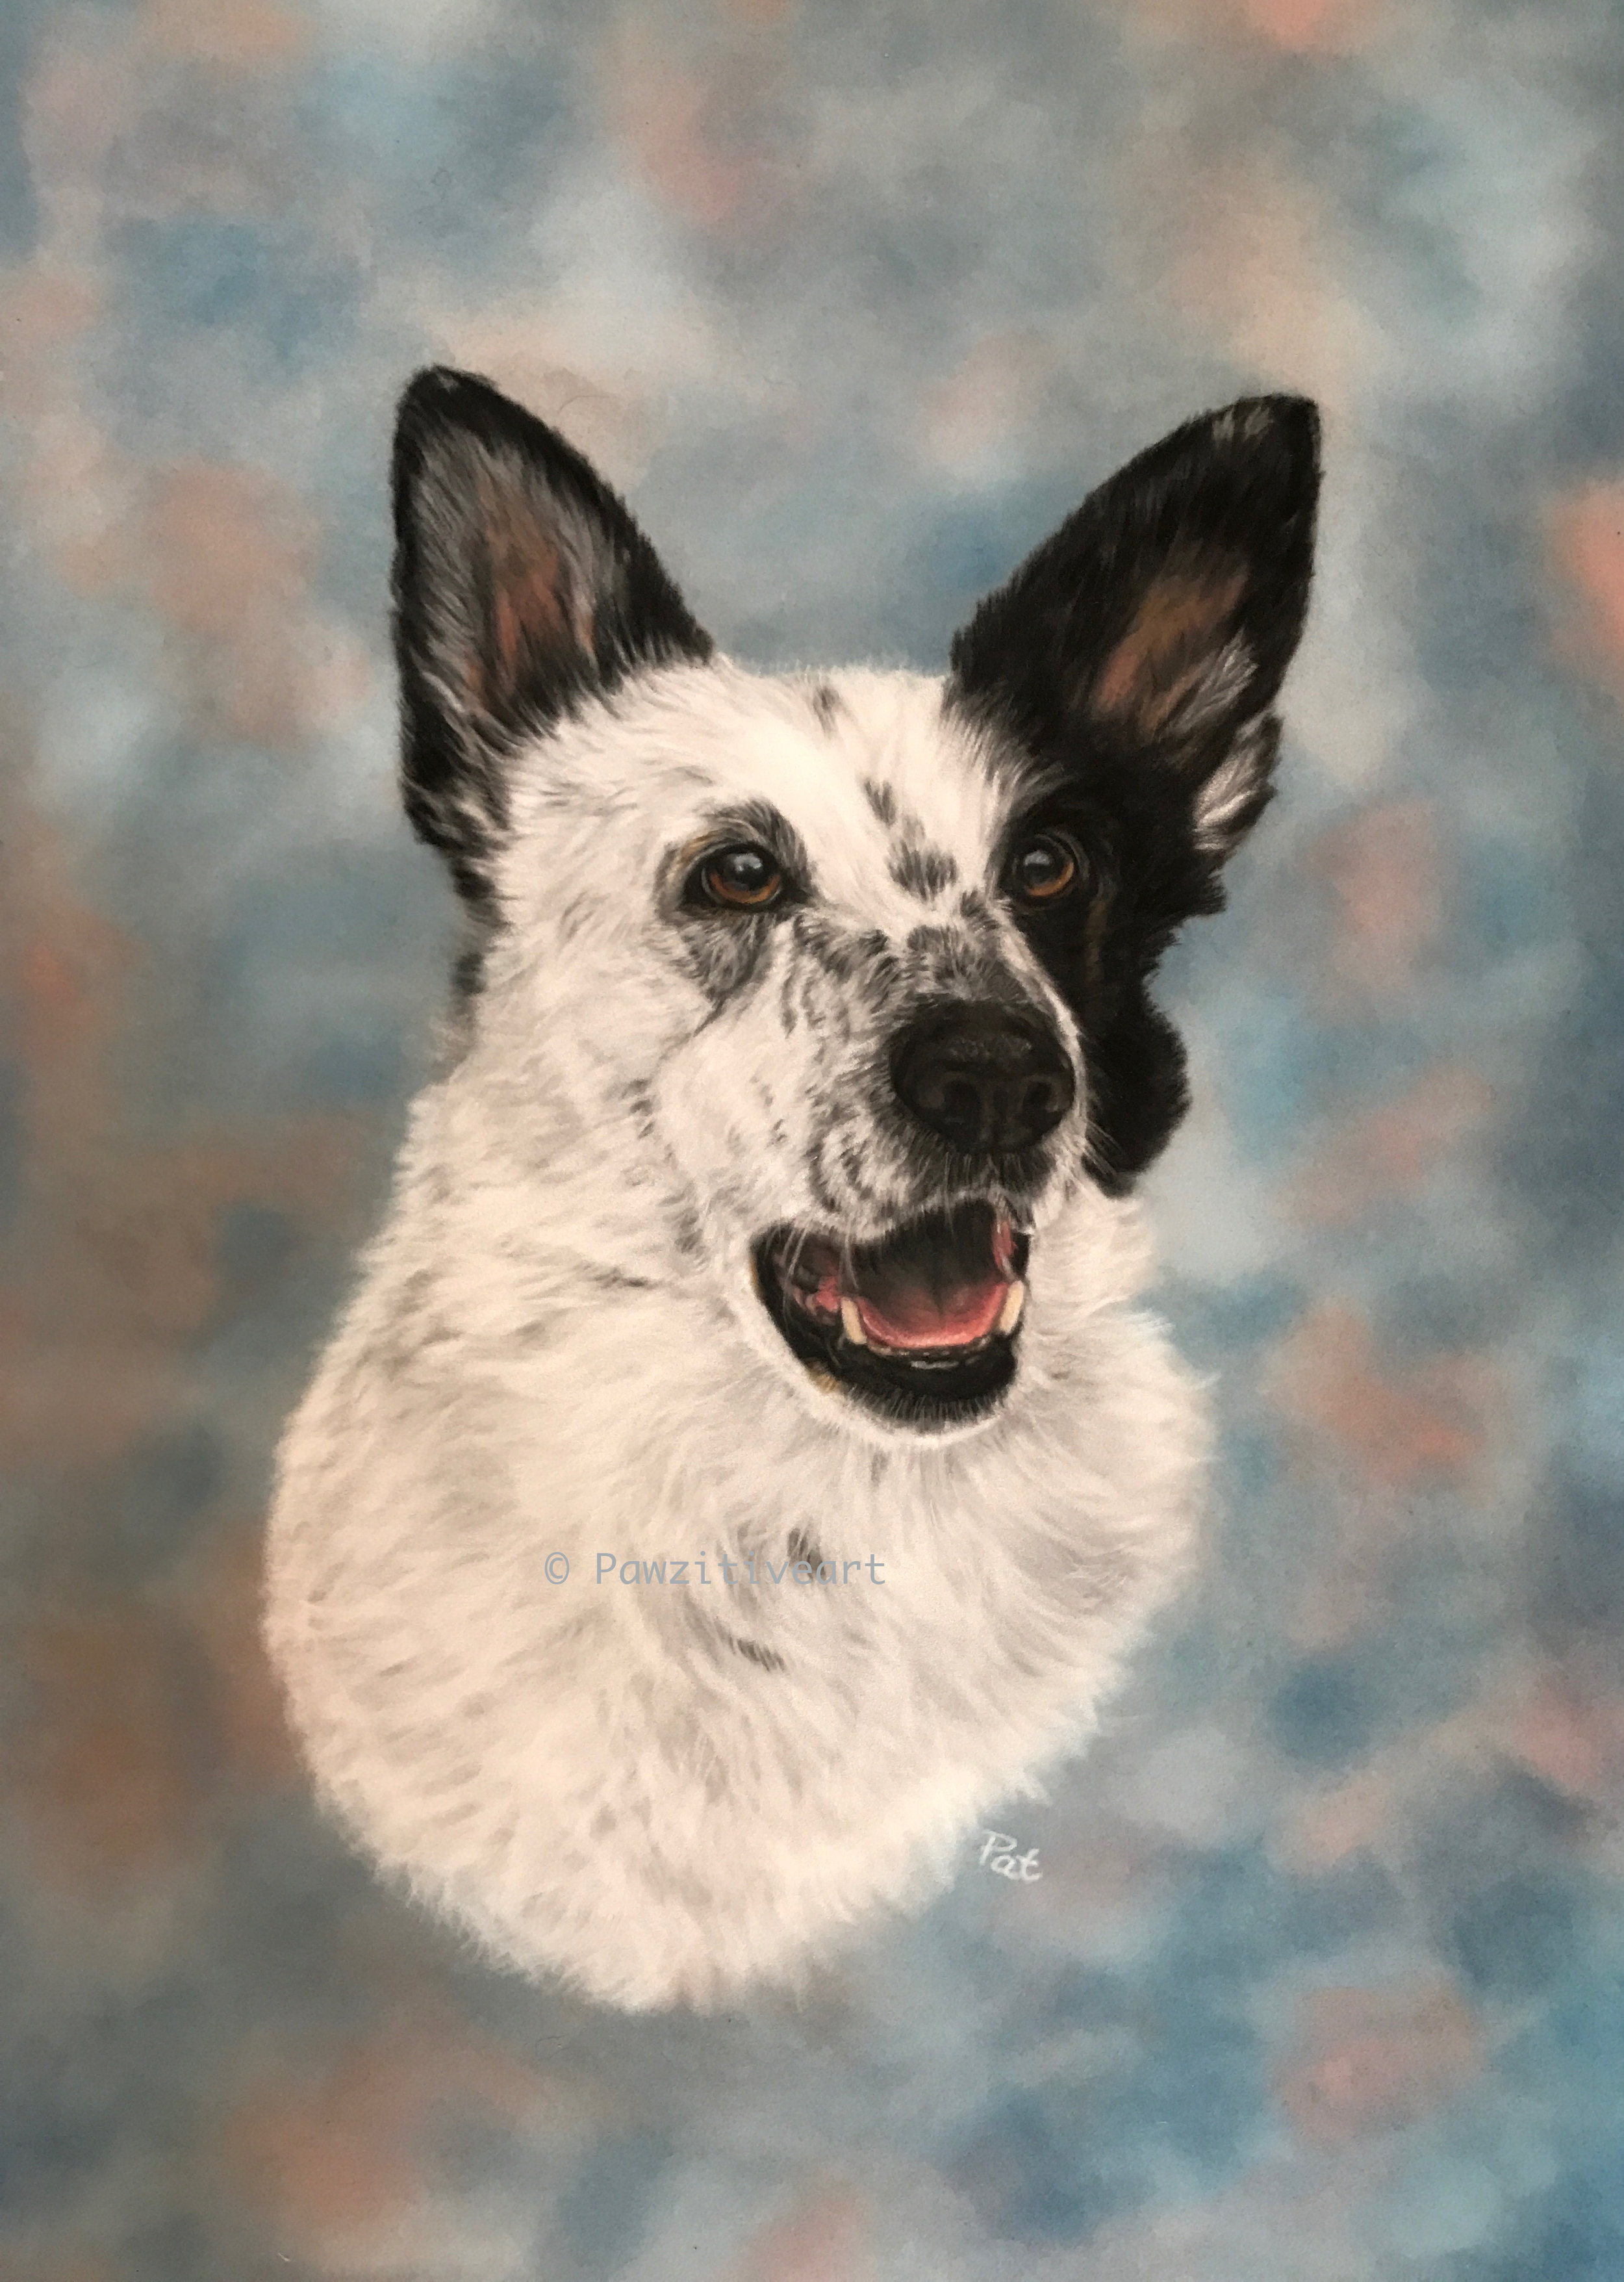 The best memory I could ask for. - Pat truly captured Flynn's personality in his portrait. He passed away in 2017, at the ripe old age of 16. His portrait reminds us of all of the joy and laughter Flynn brought into our lives.- Danielle B.